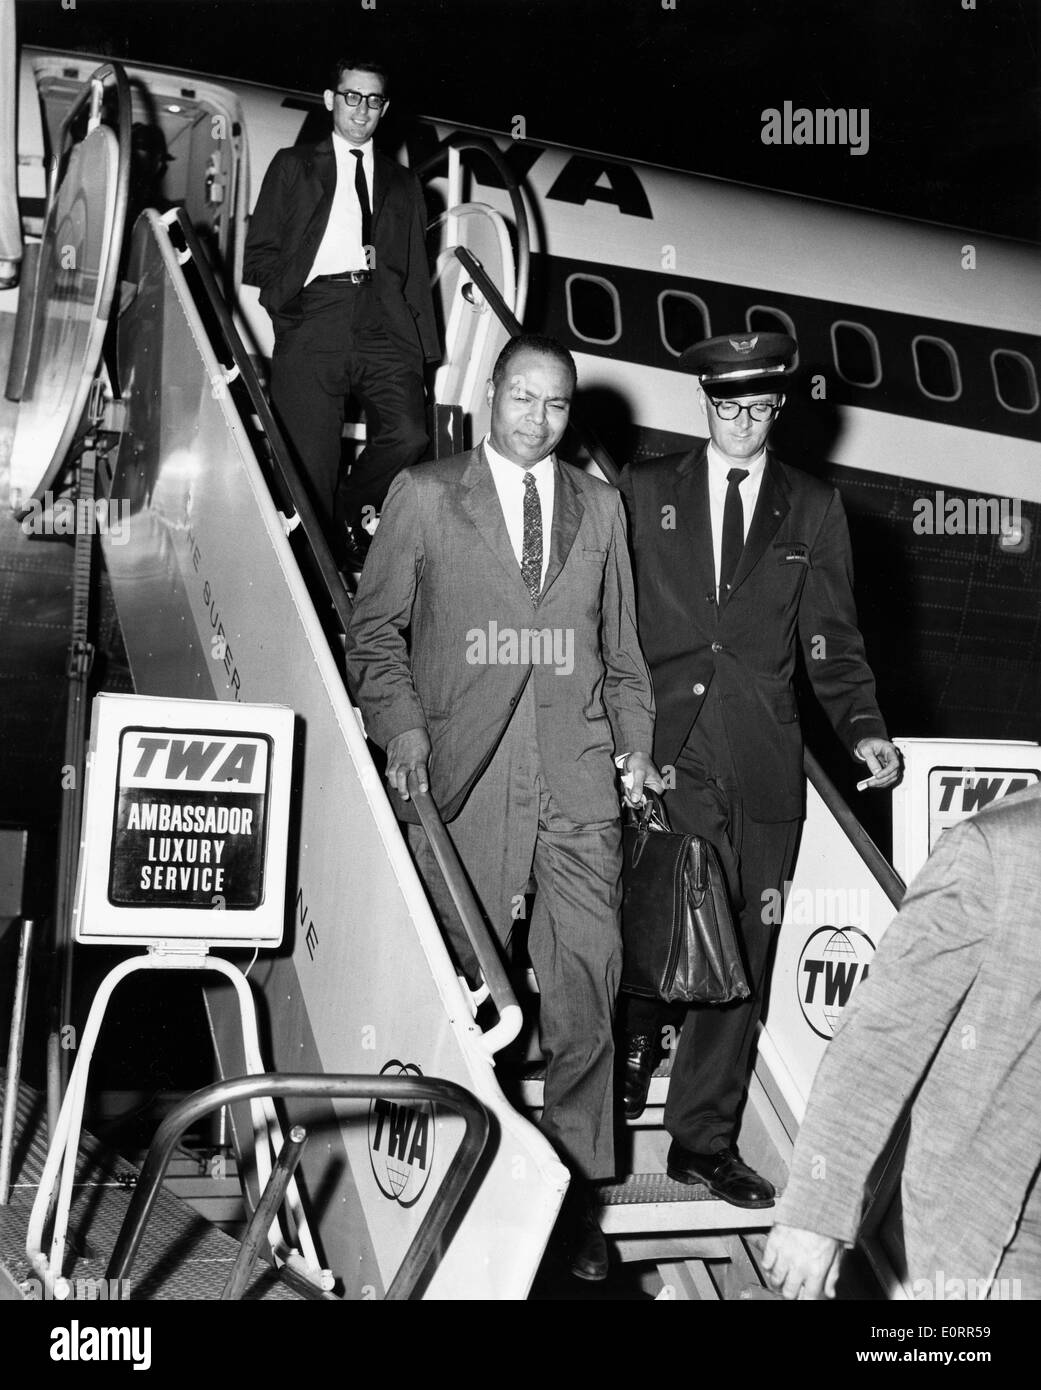 Civil rights activist James L. Farmer, Jr. arrives in New York - Stock Image